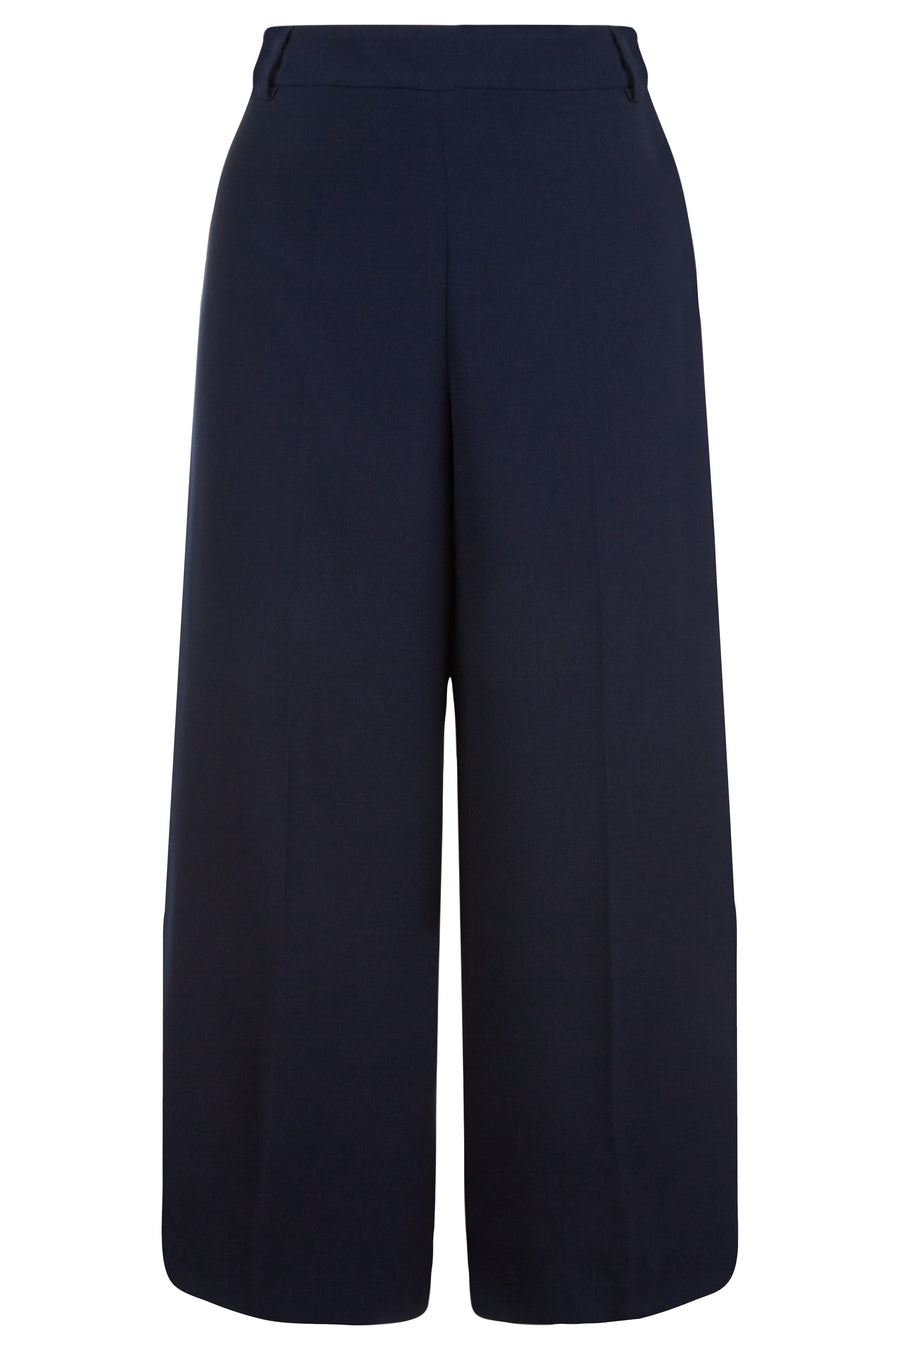 Kendle Navy Suiting Culottes